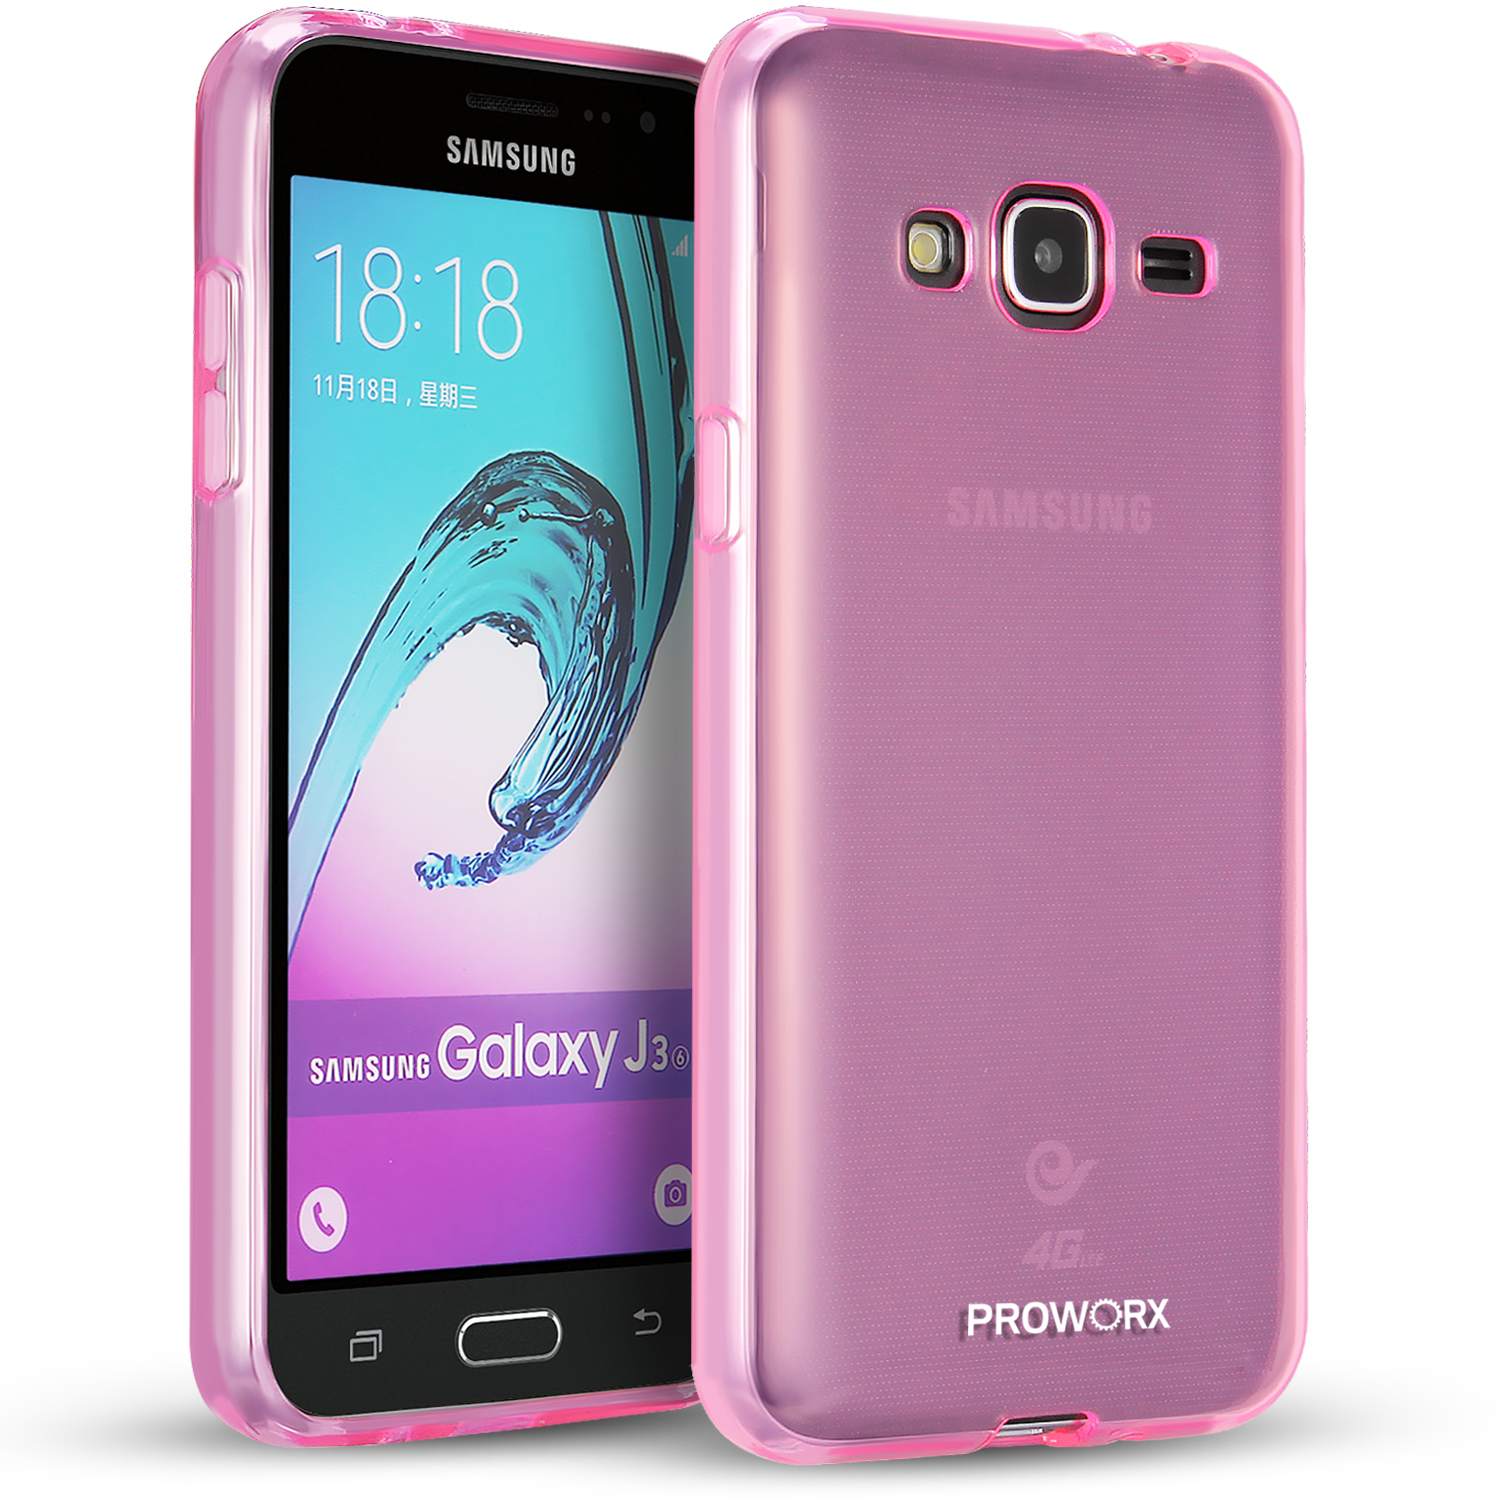 Samsung Galaxy J3 Hot Pink ProWorx Ultra Slim Thin Scratch Resistant TPU Silicone Case Cover